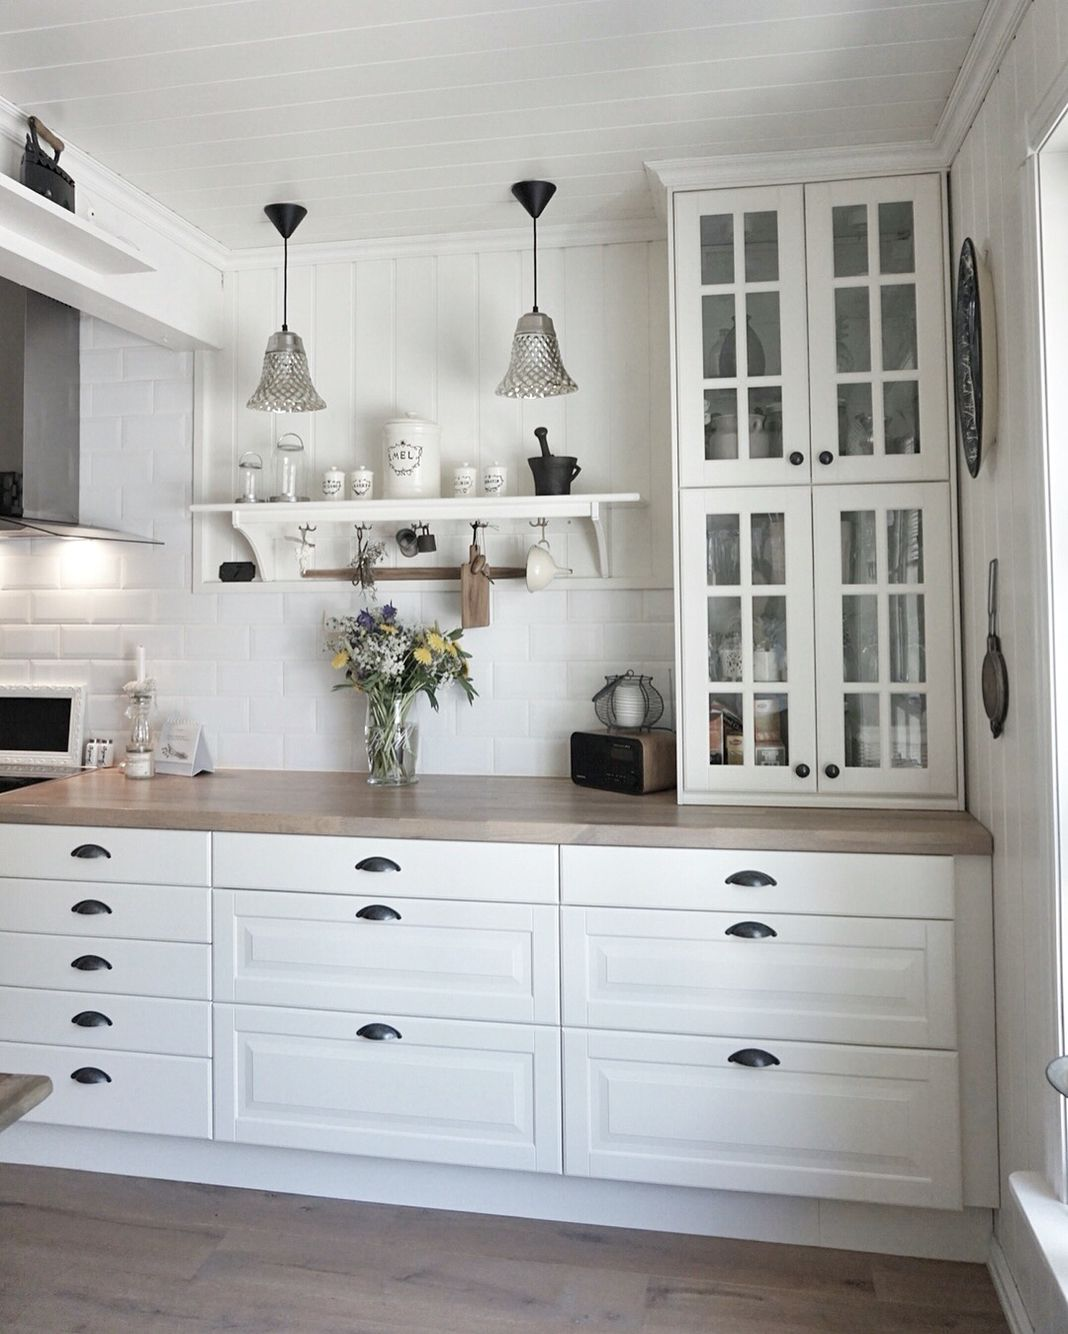 ikea kitchen cabinet ideas ikea kitchen behindabluedoor kitchen kasvuhoone 4472